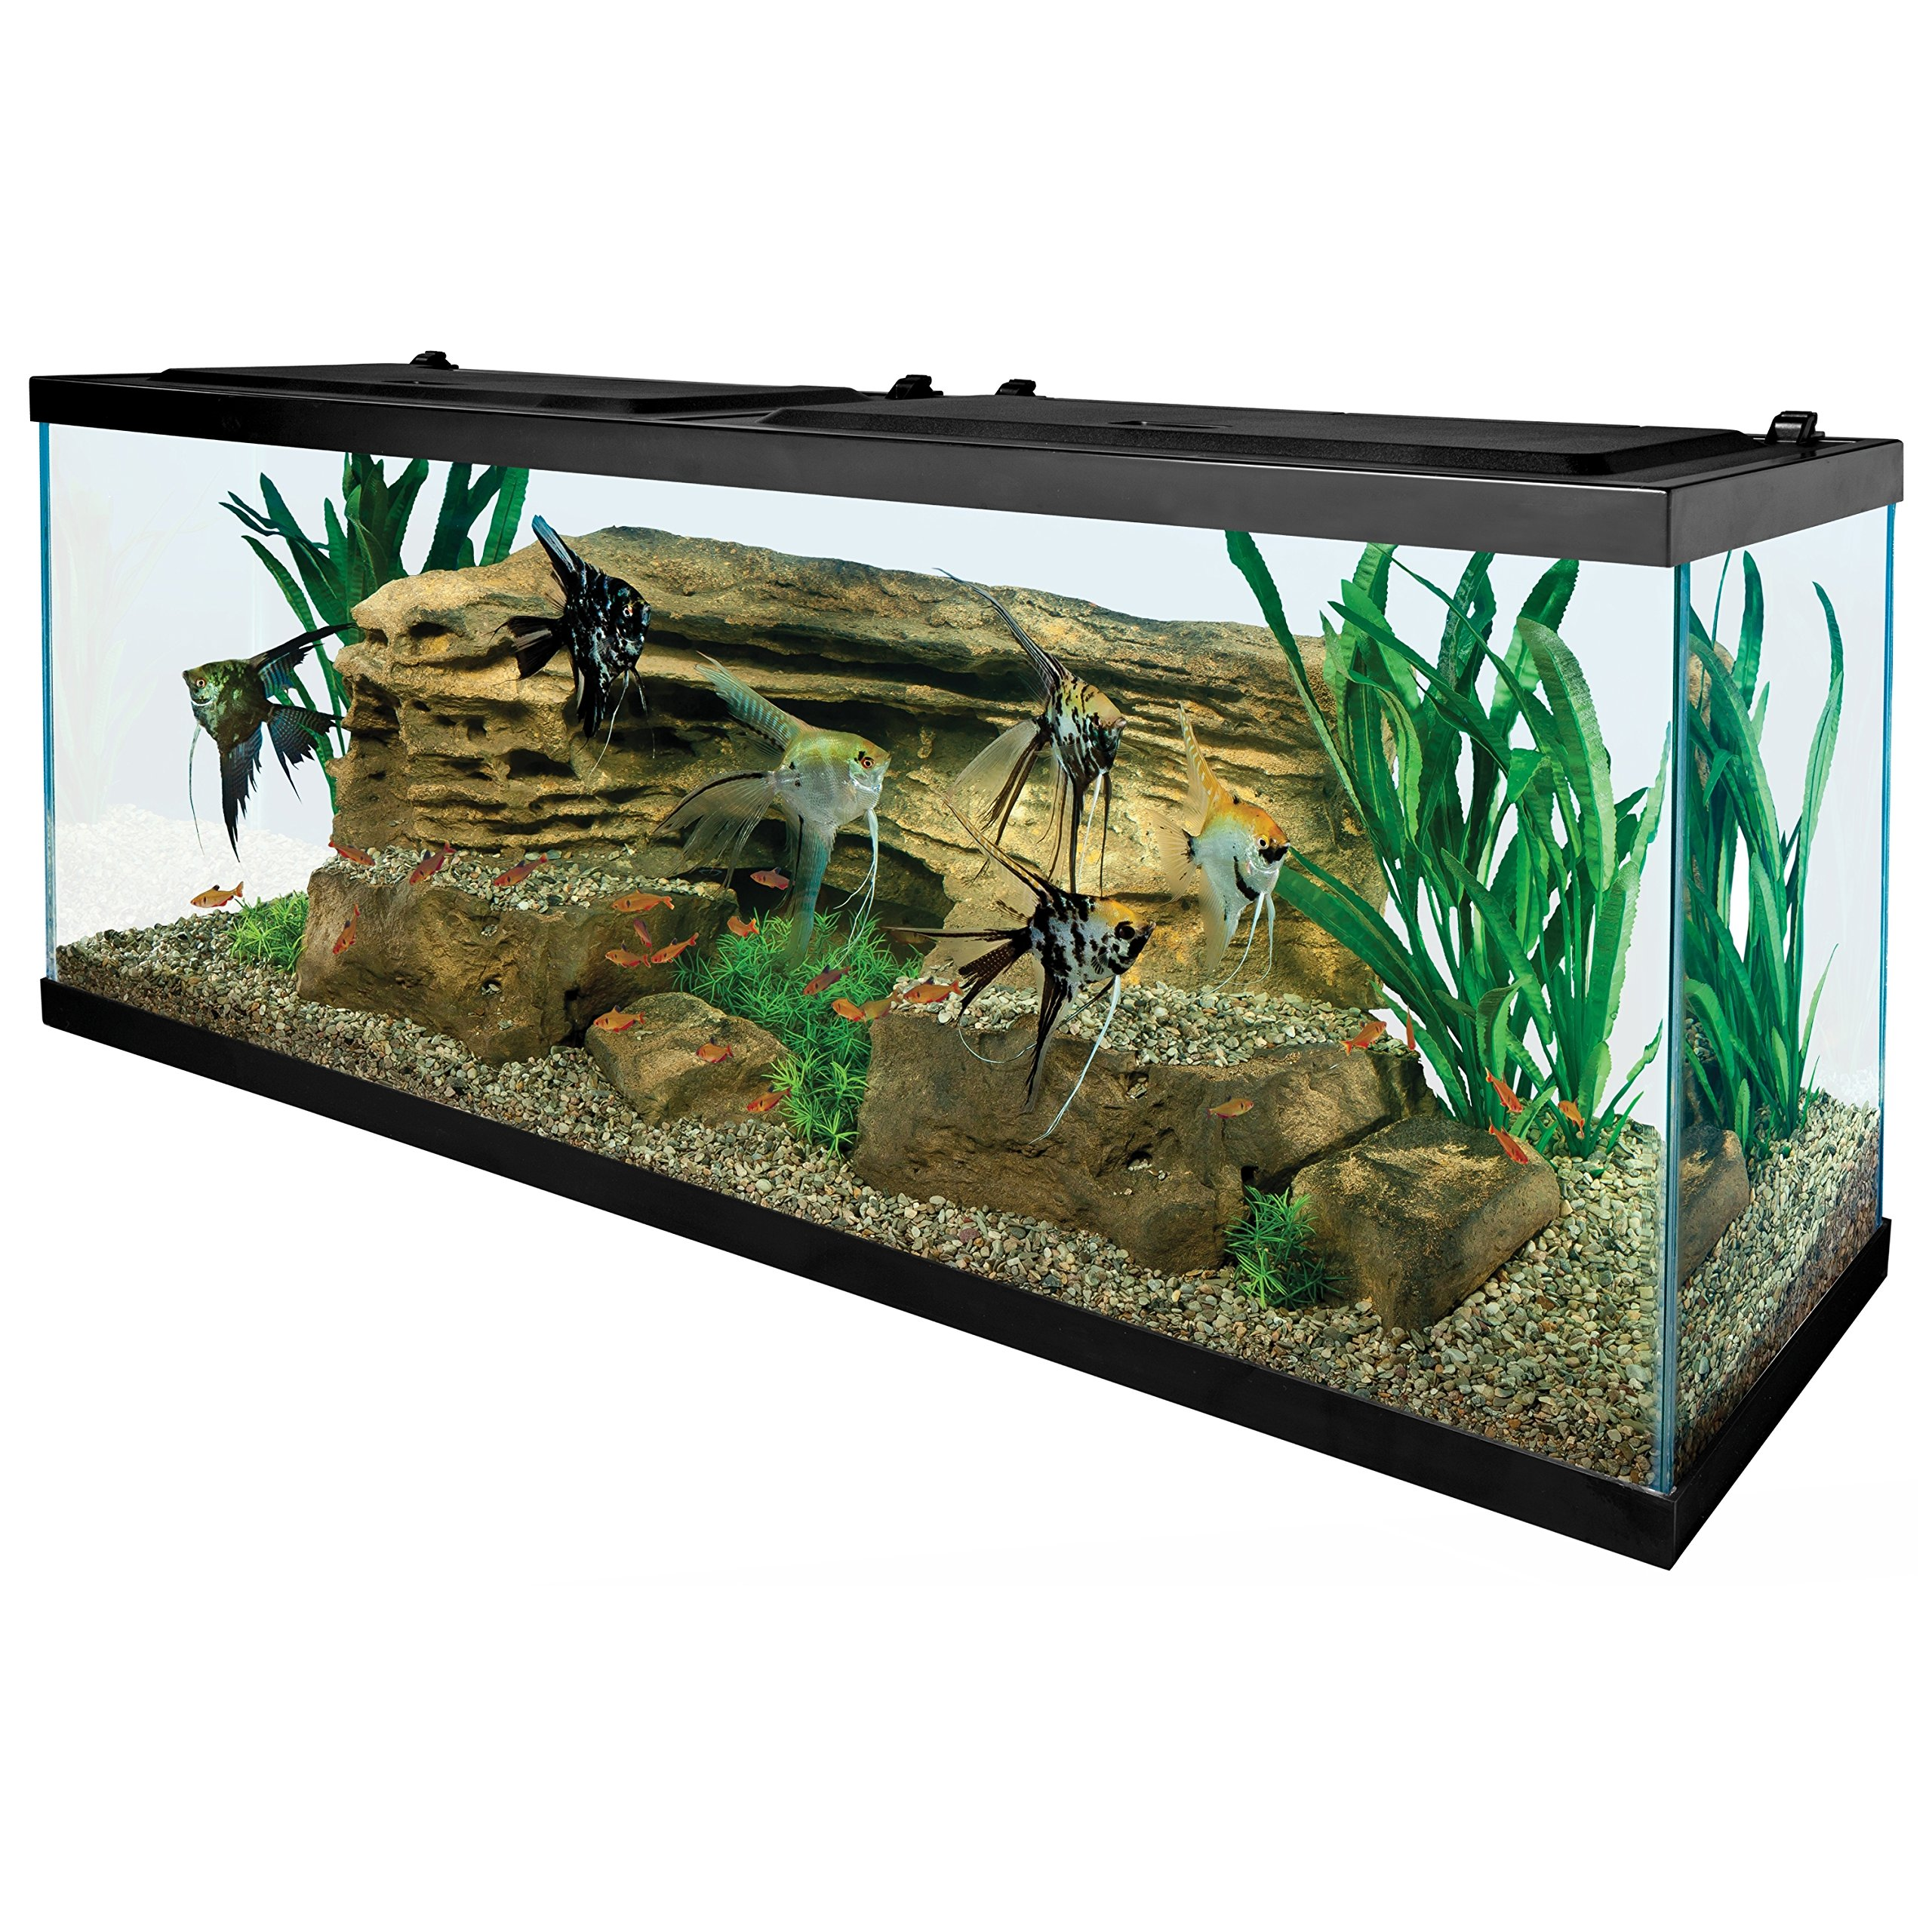 Tetra 55 Gallon Aquarium Kit with Fish Tank, Fish Net, Fish Food, Filter, Heater and Water Conditioners by Tetra